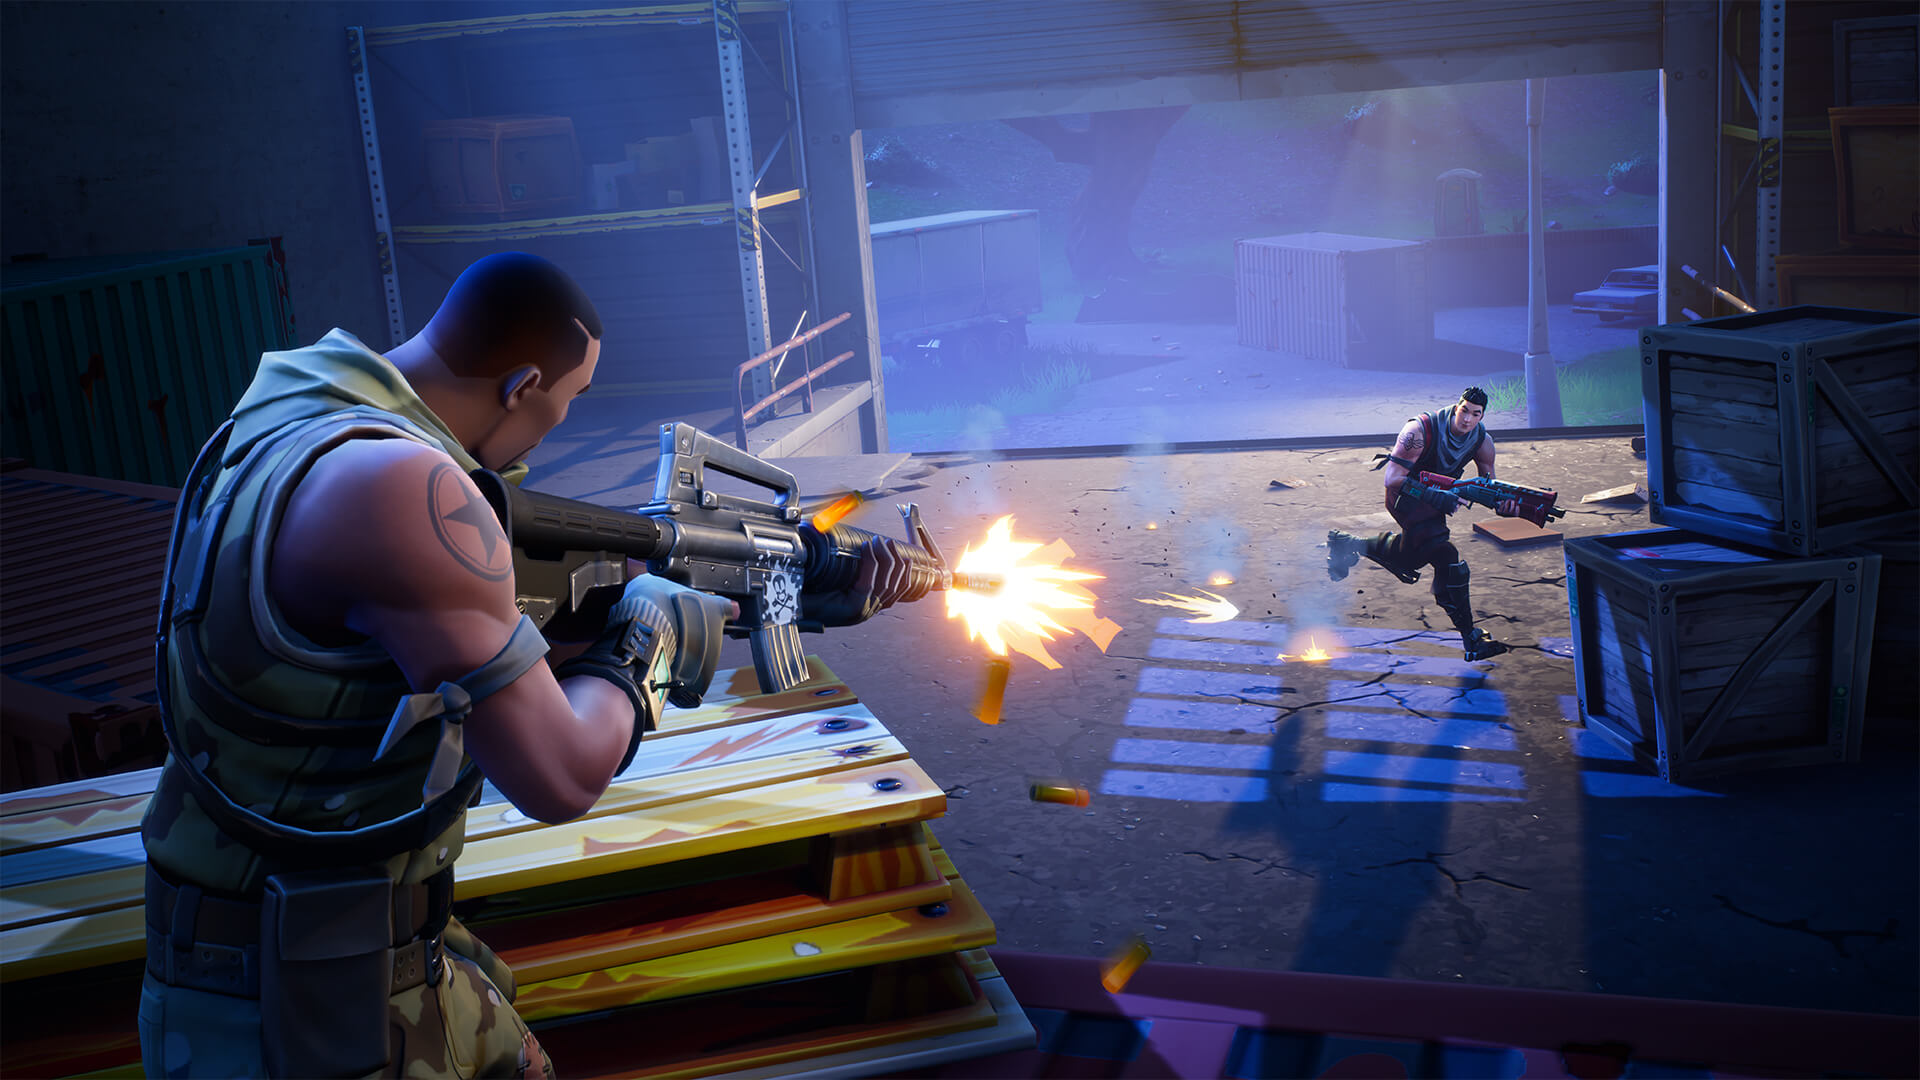 'Fortnite Battle Royale' a Storm of Enjoyment